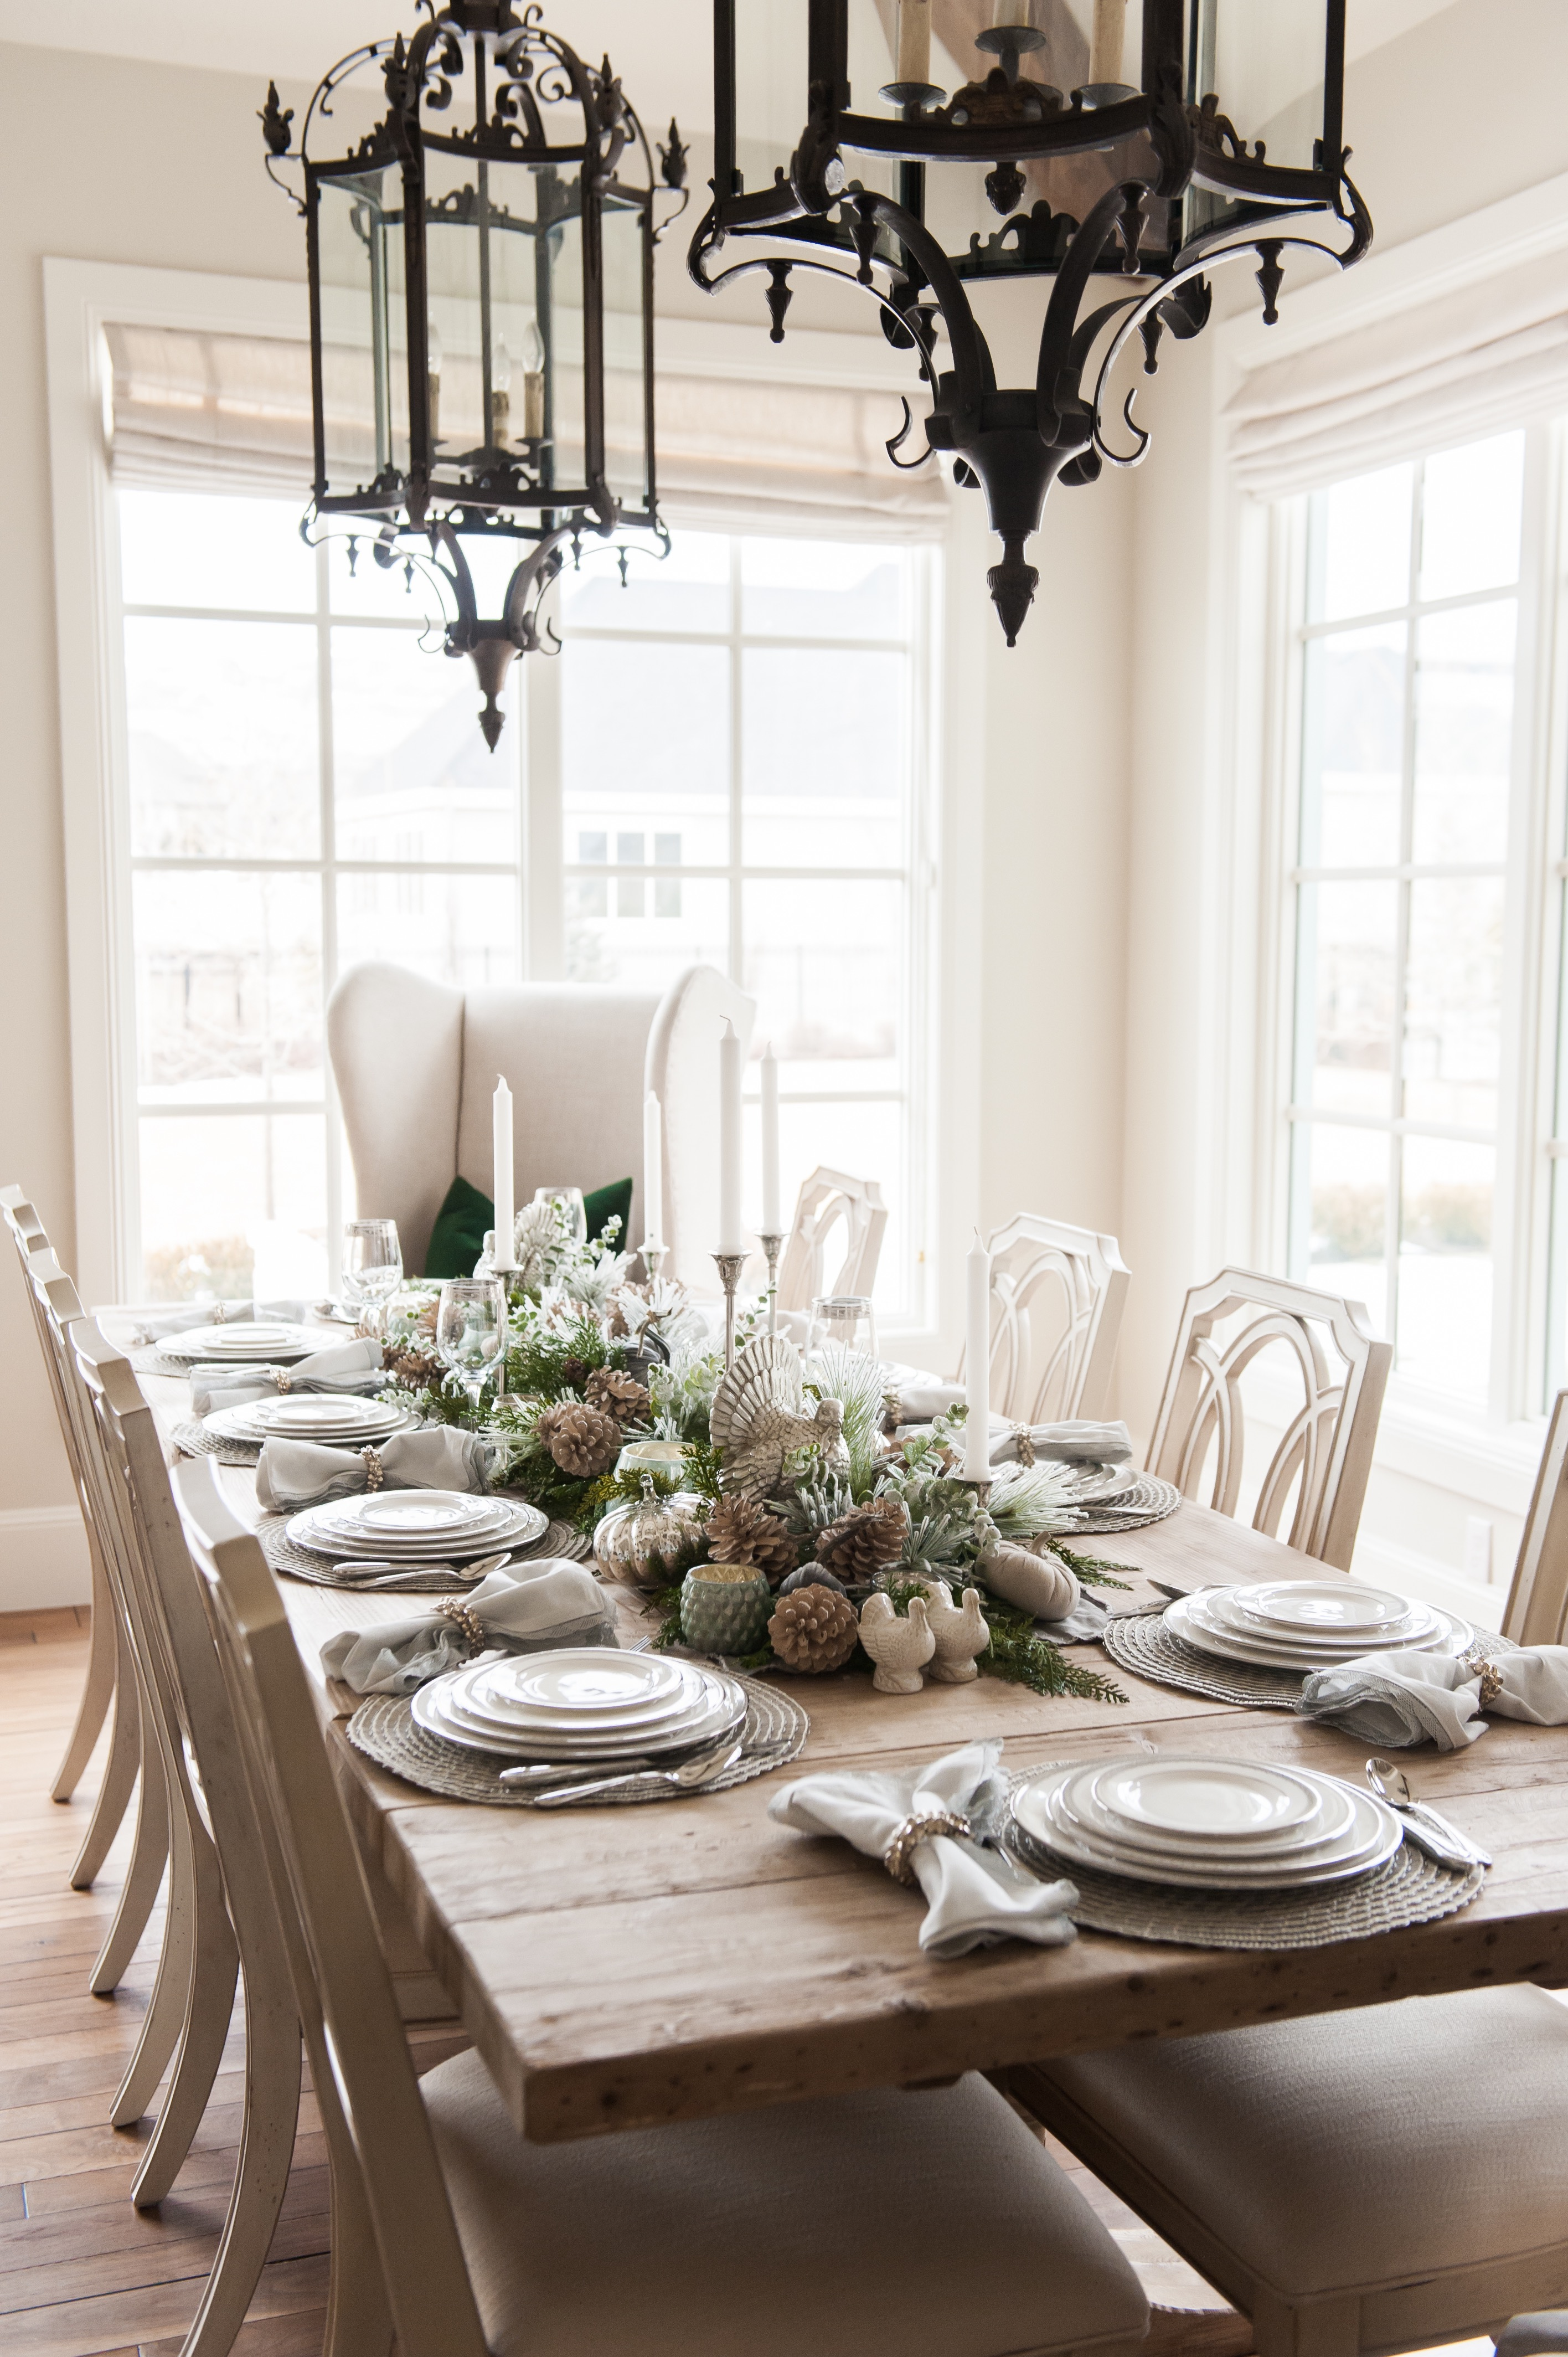 Holiday Hosting at Home Blog Hop - Fall Tablescapes and Home Decor